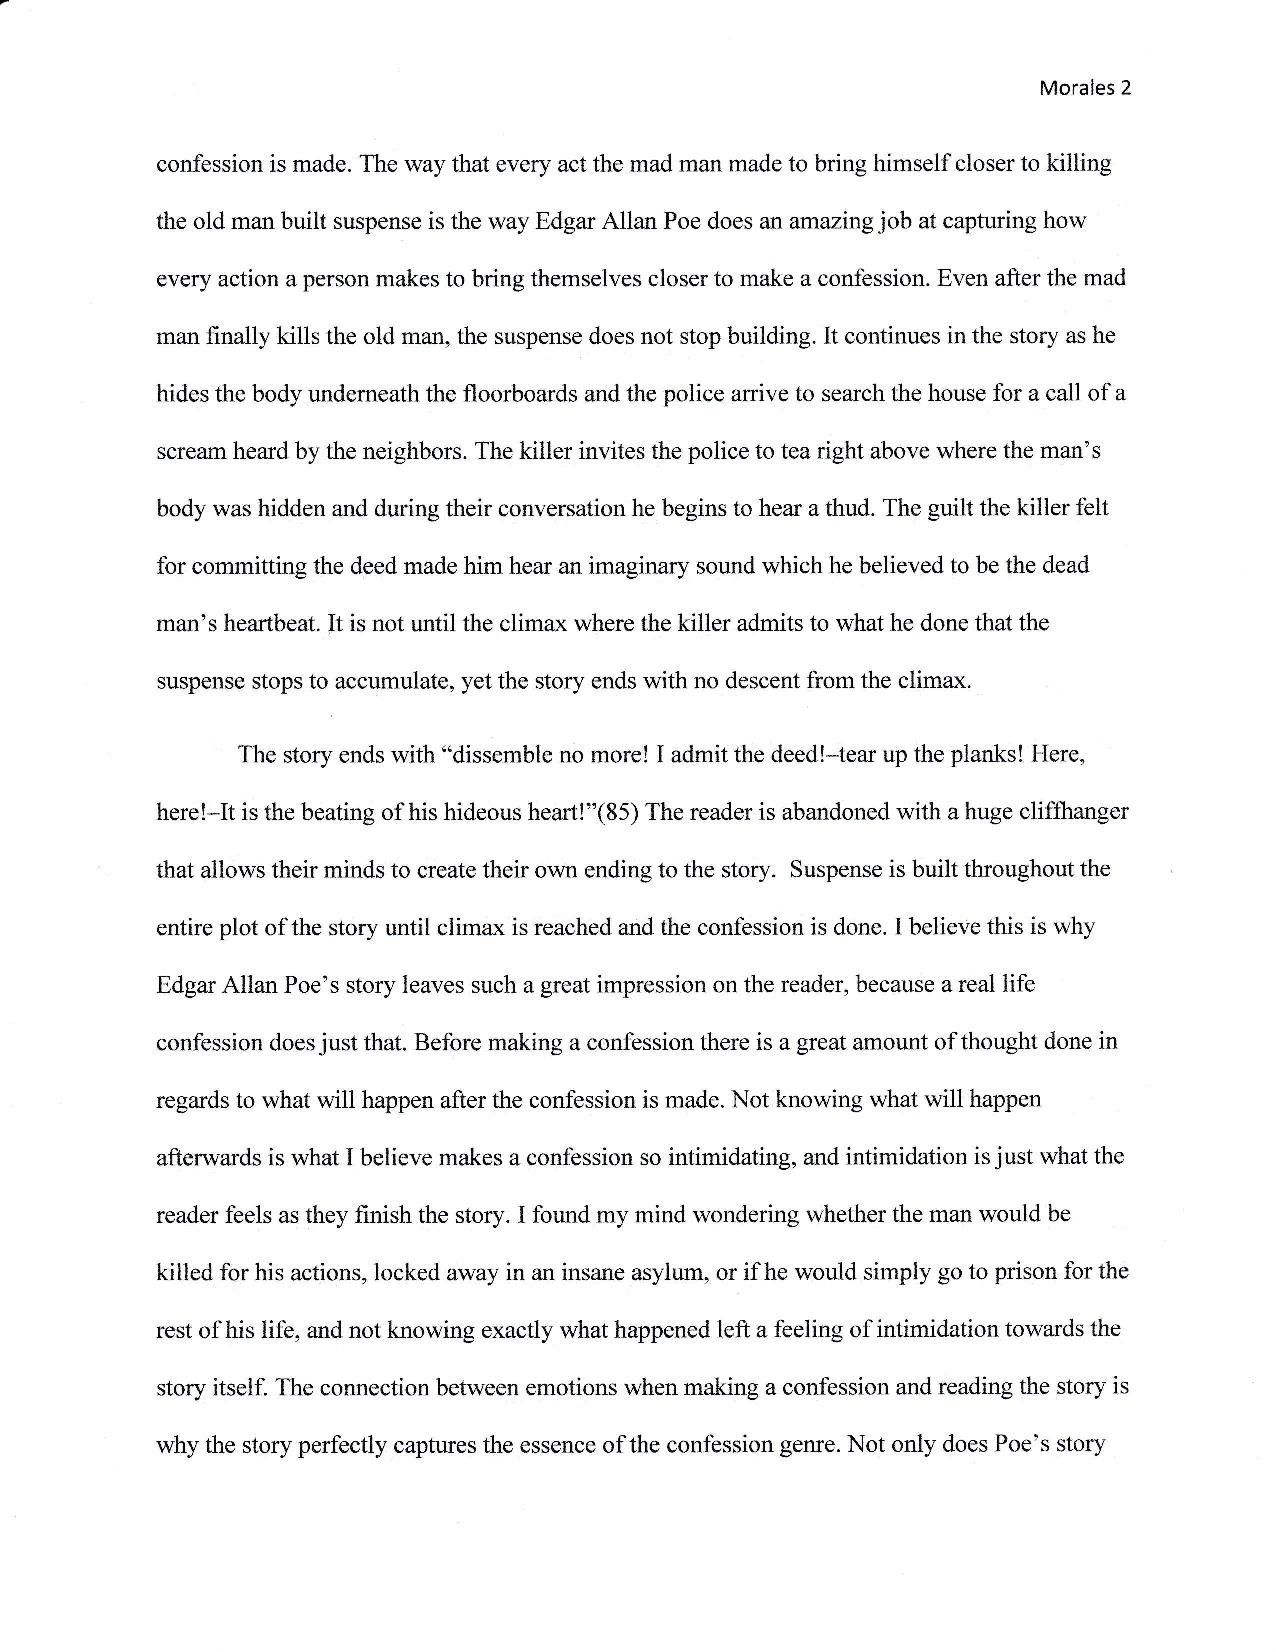 edgar allan poe essay critical reading essay draft omar morales writing portfolio